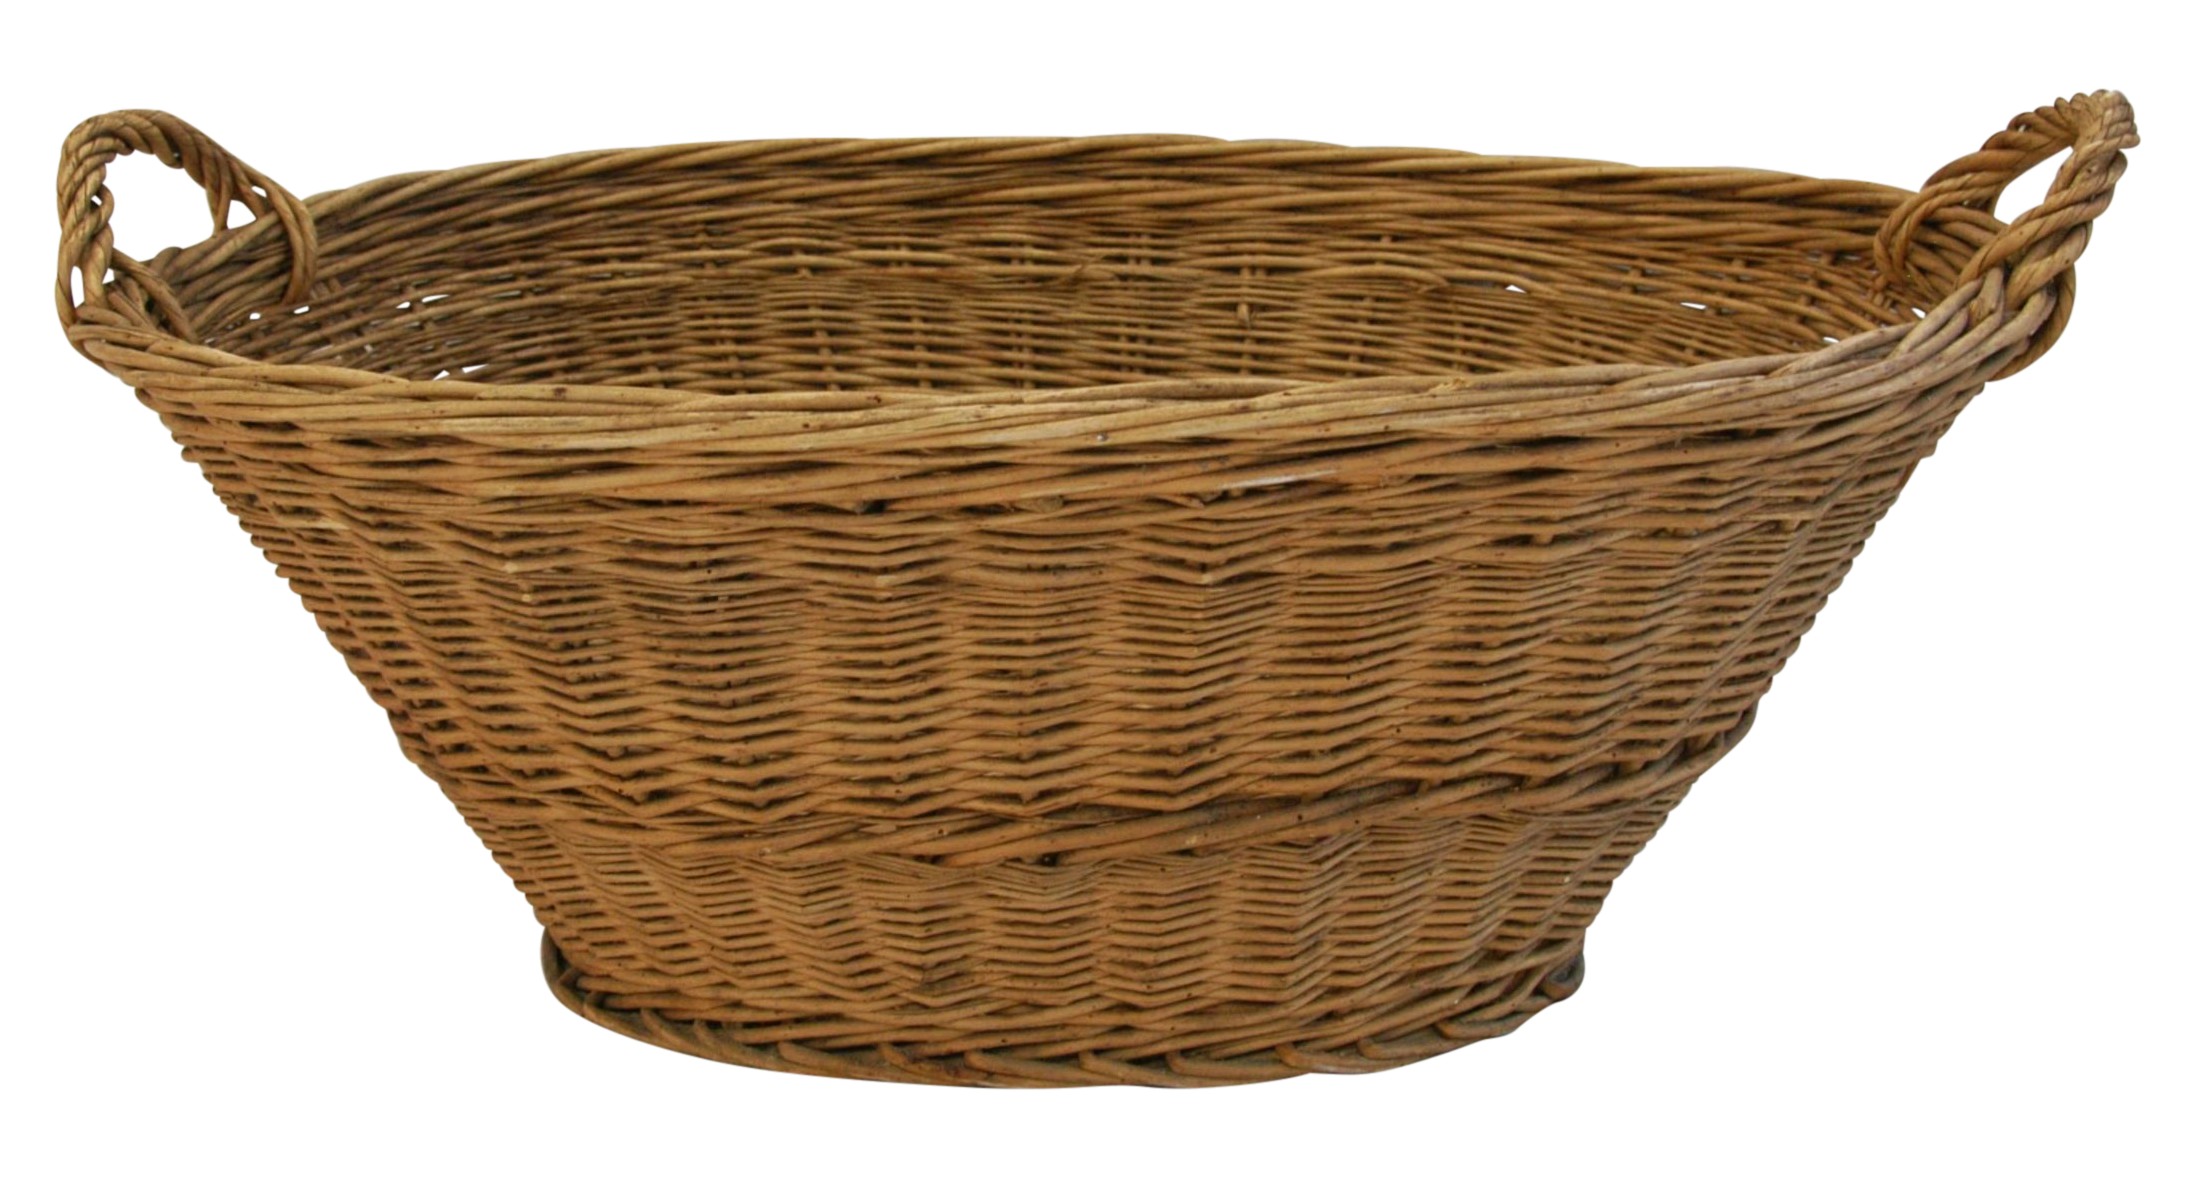 Wicker Basket PNG-PlusPNG.com-2194 - Wicker Basket PNG